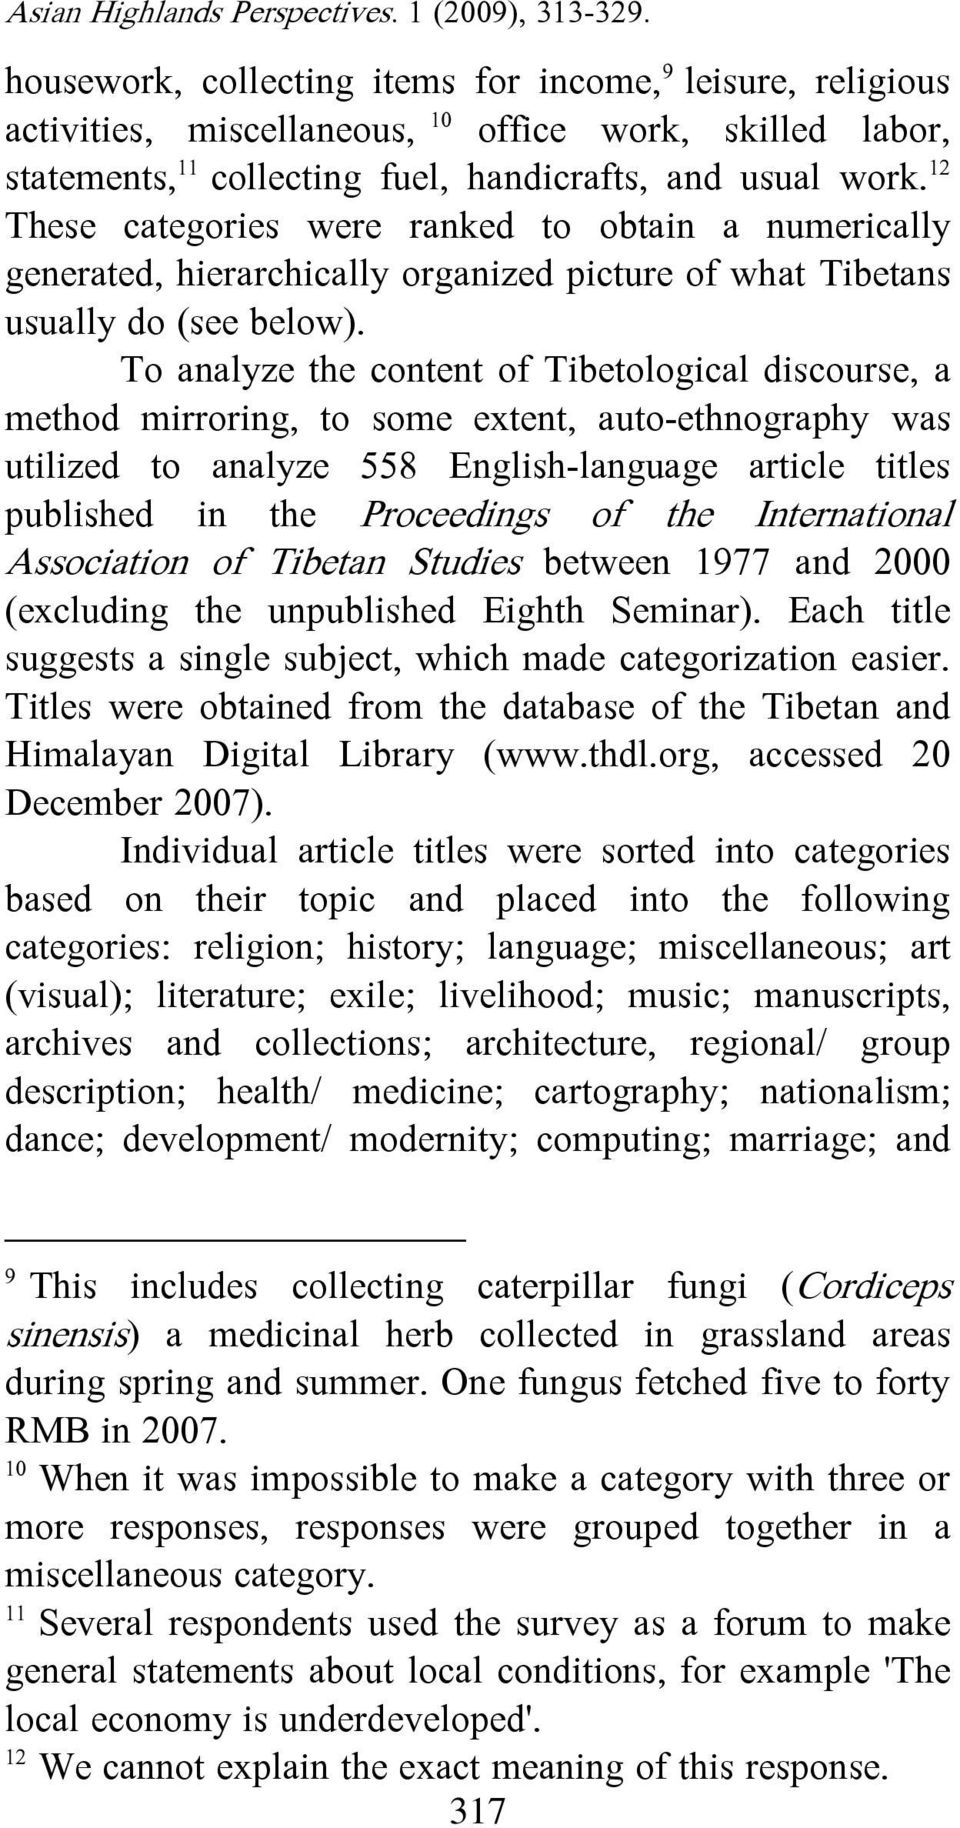 To analyze the content of Tibetological discourse, a method mirroring, to some extent, auto-ethnography was utilized to analyze 558 English-language article titles published in the Proceedings of the